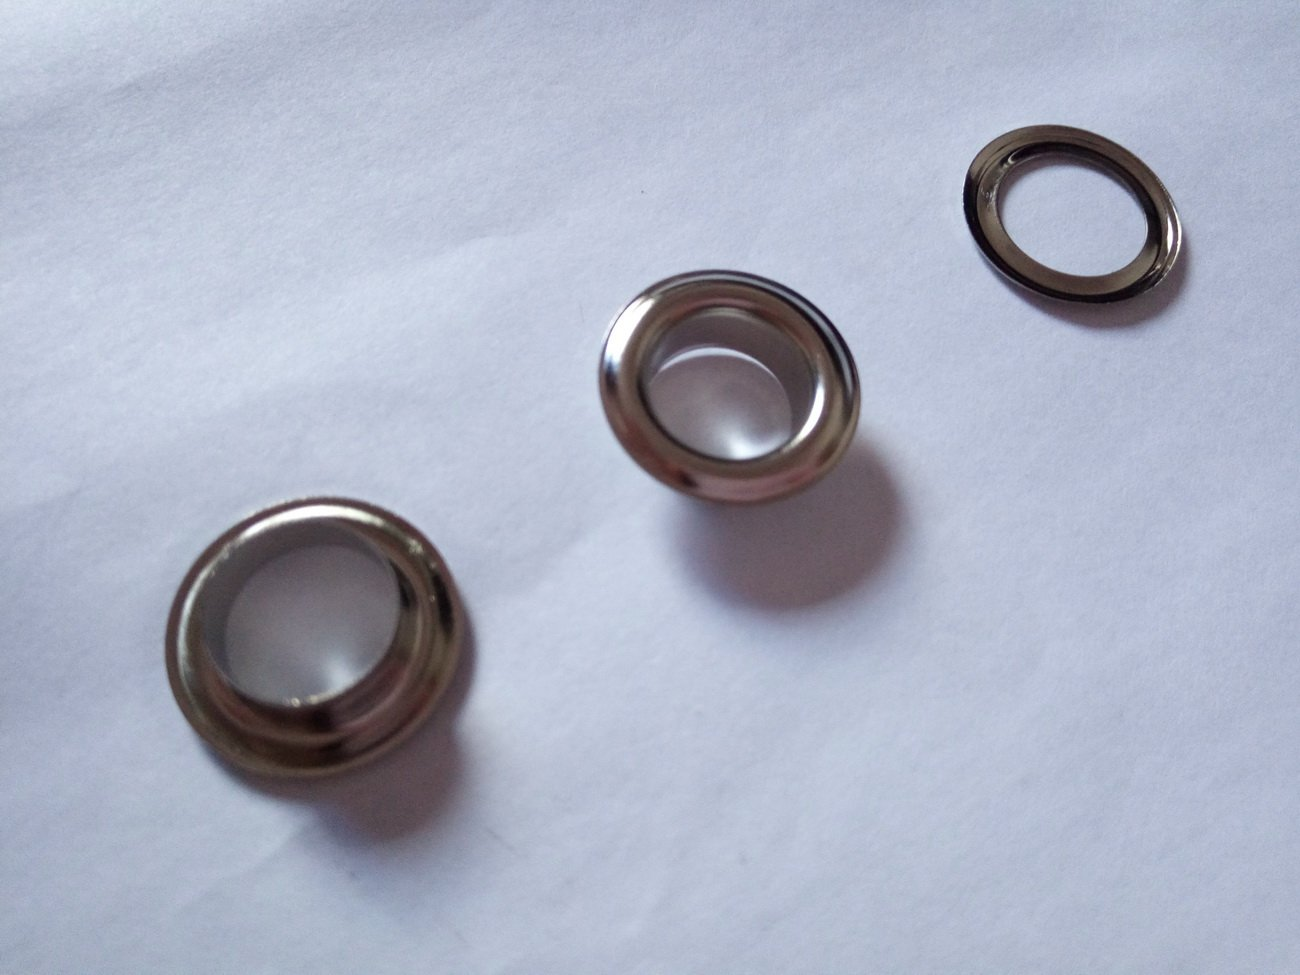 Inton Solid Brass Grommets Eyelets 100 Pack (3/8